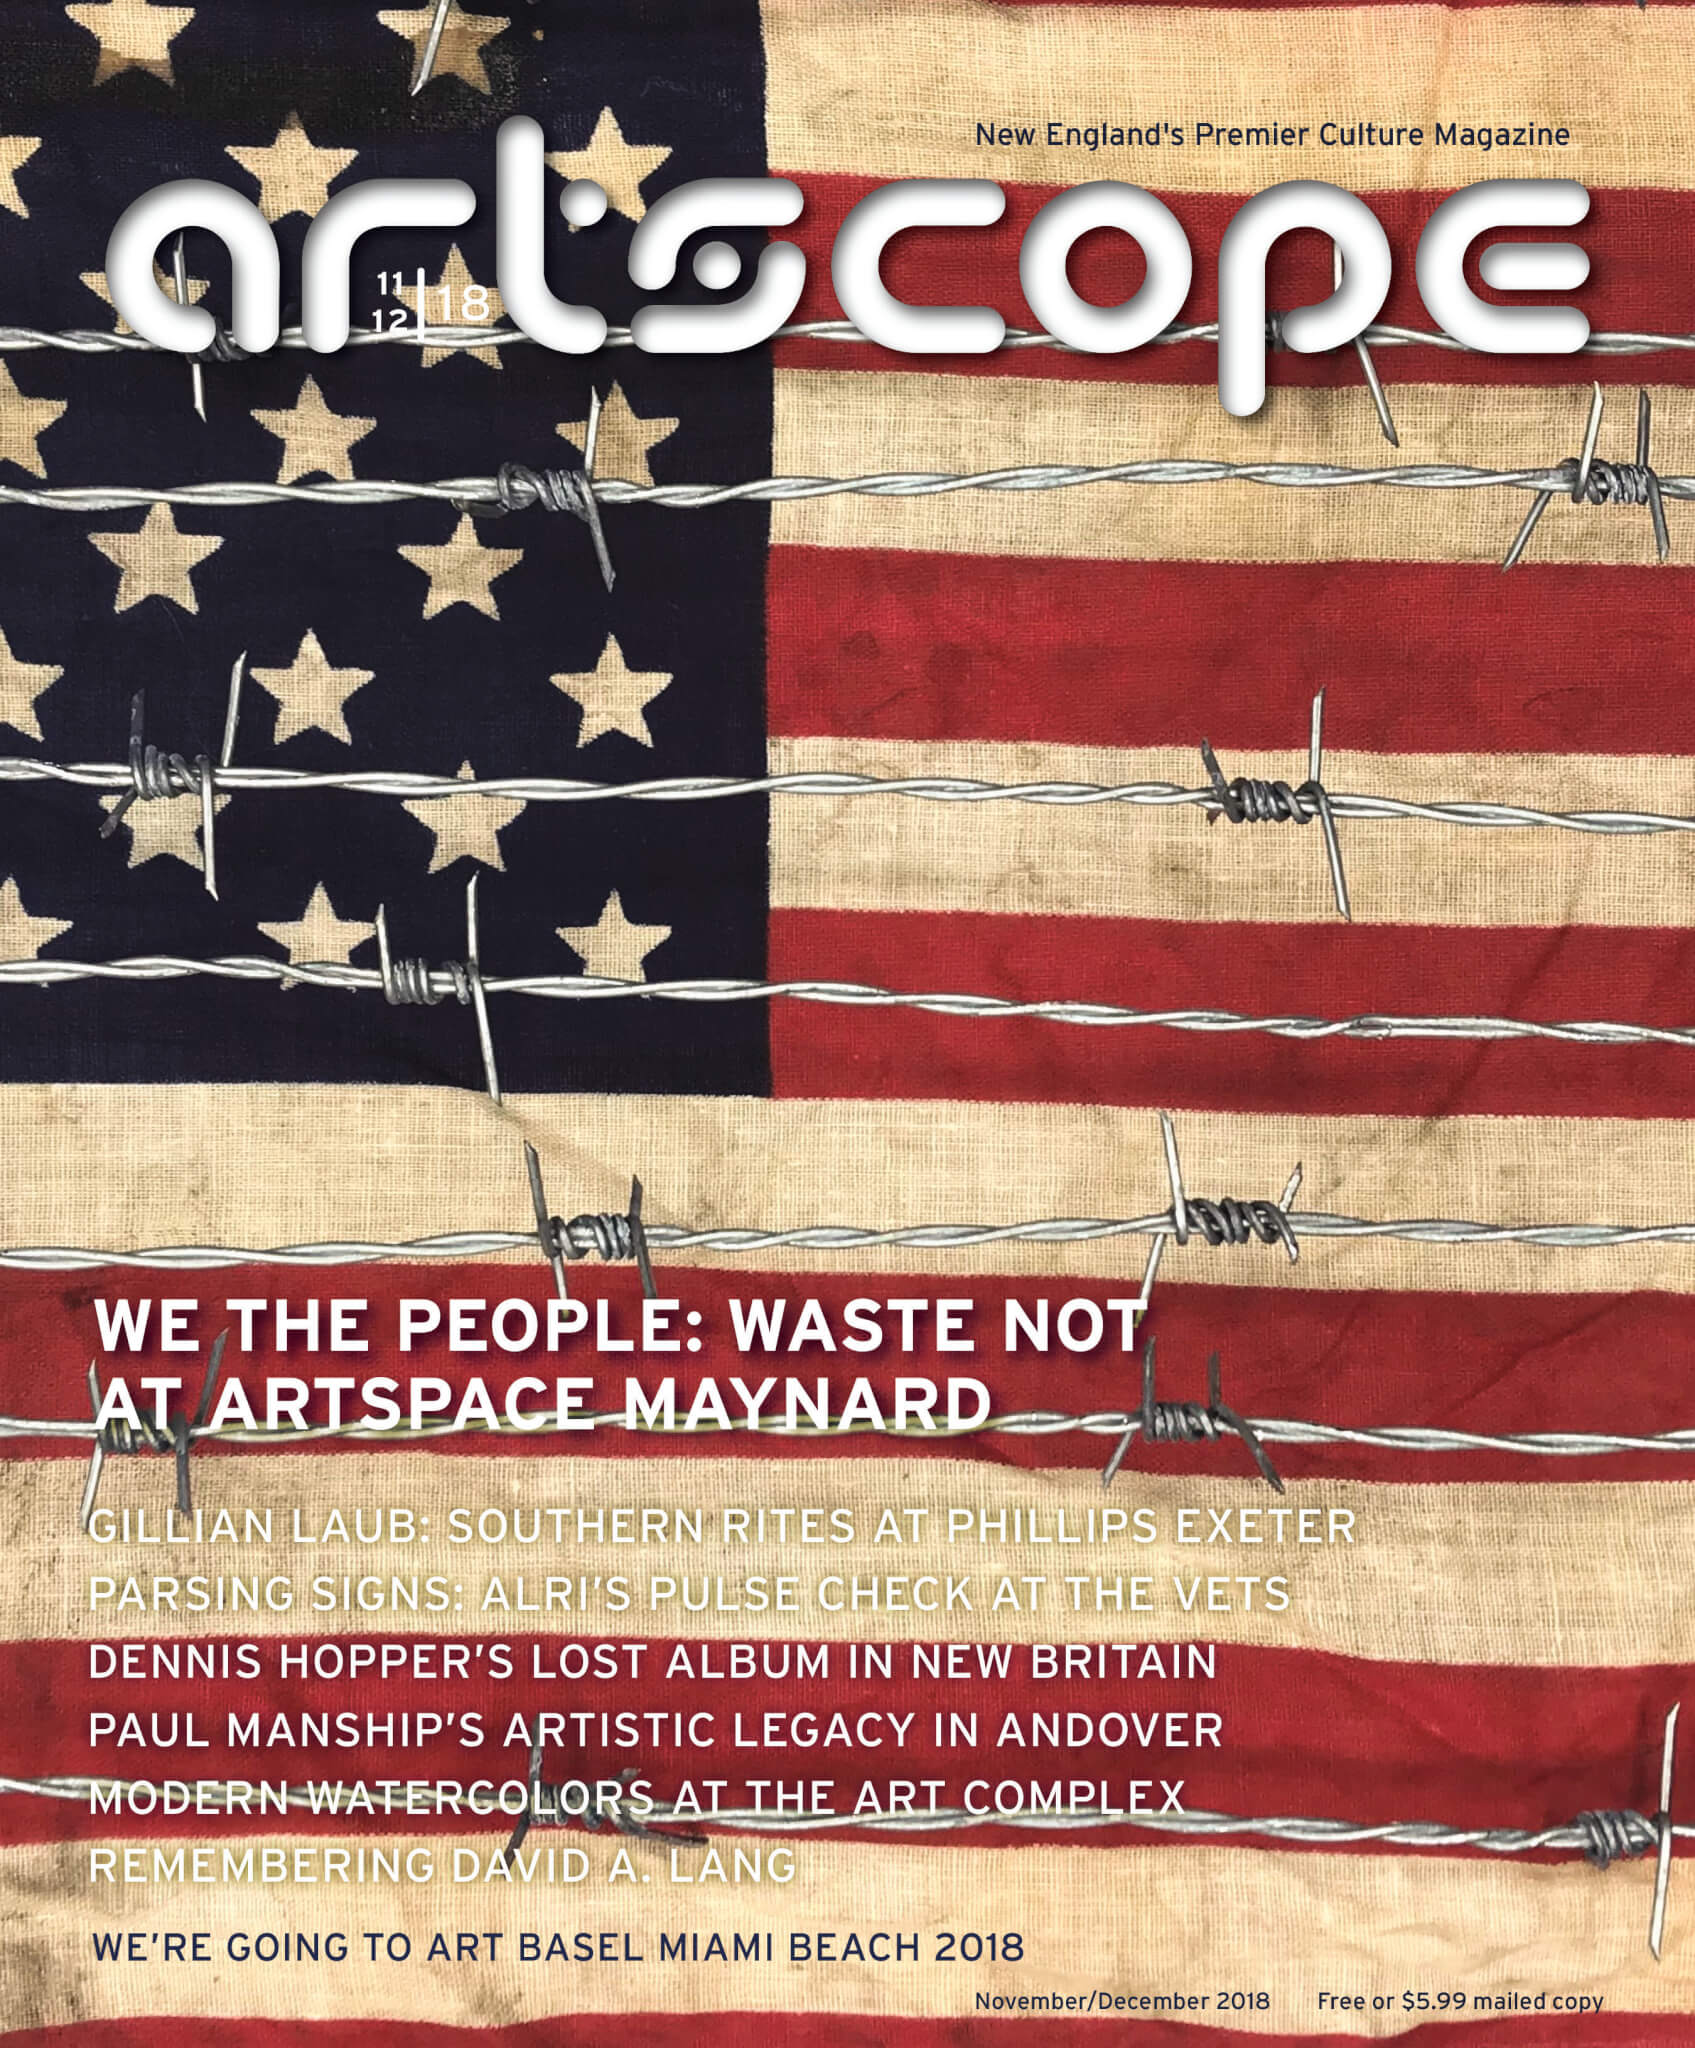 Artscope Magazine Issue 77 - November/December 2018